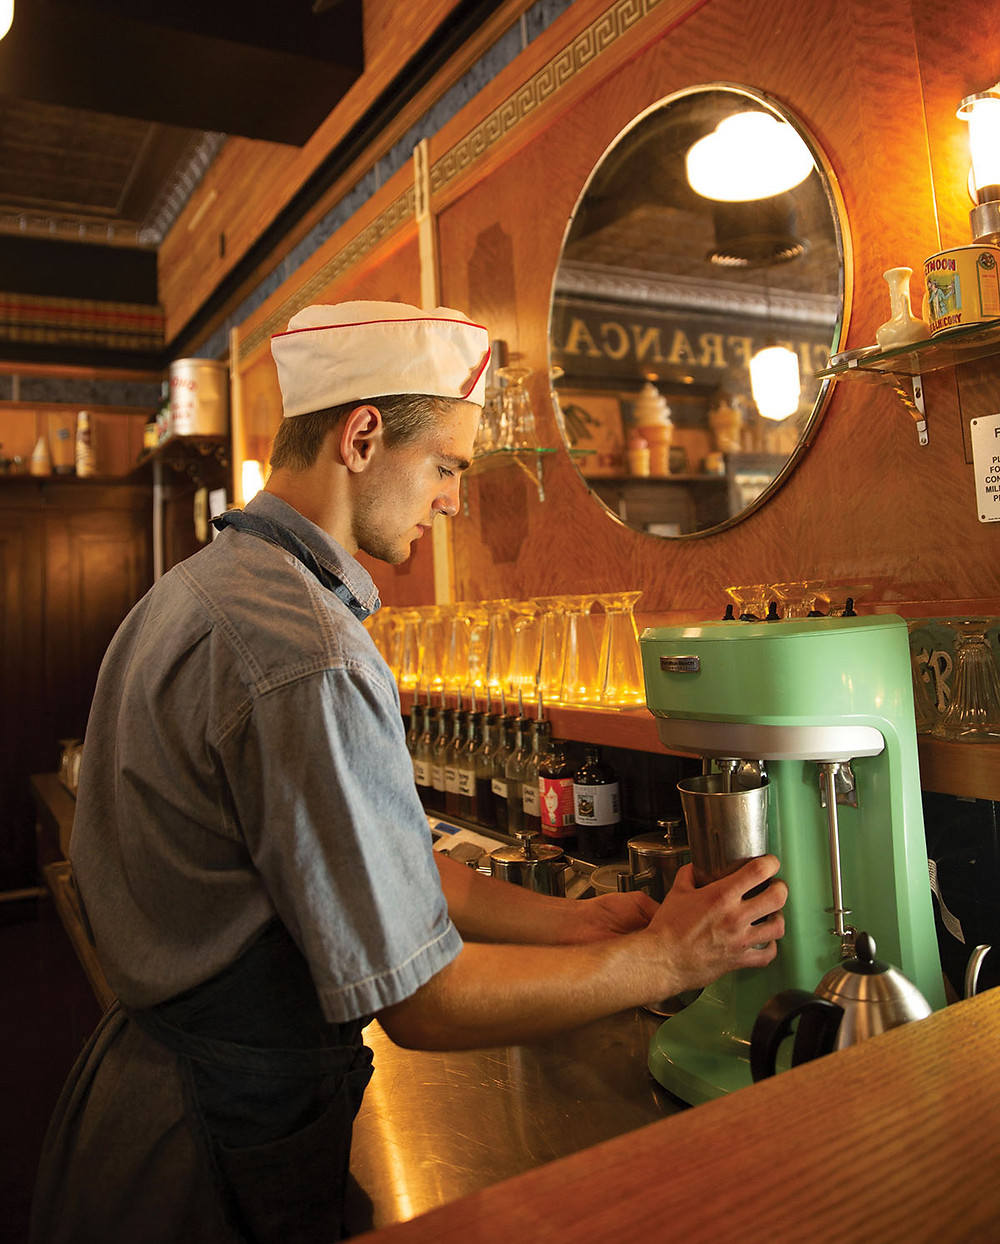 A young man in an old fashioned ice cream parlor hat and apron mixes a milk shake using a vintage mint condition and colored mixer front the 1940s